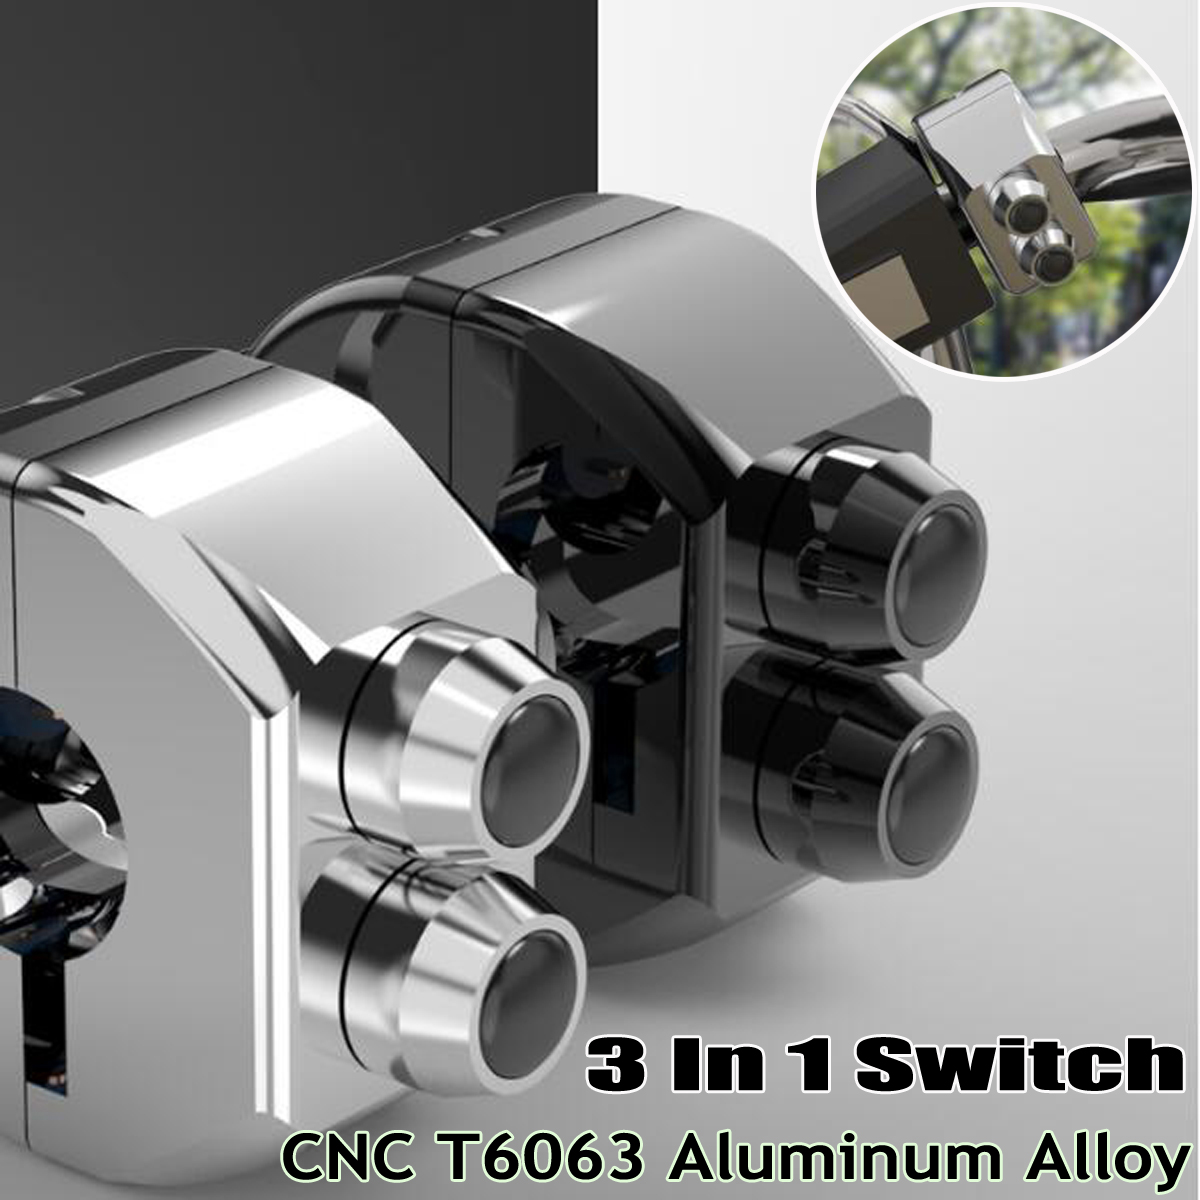 CNC Self Latching Switch Motorcycle Cafe Race Handle Grips Reset 3 Buttons Alloy